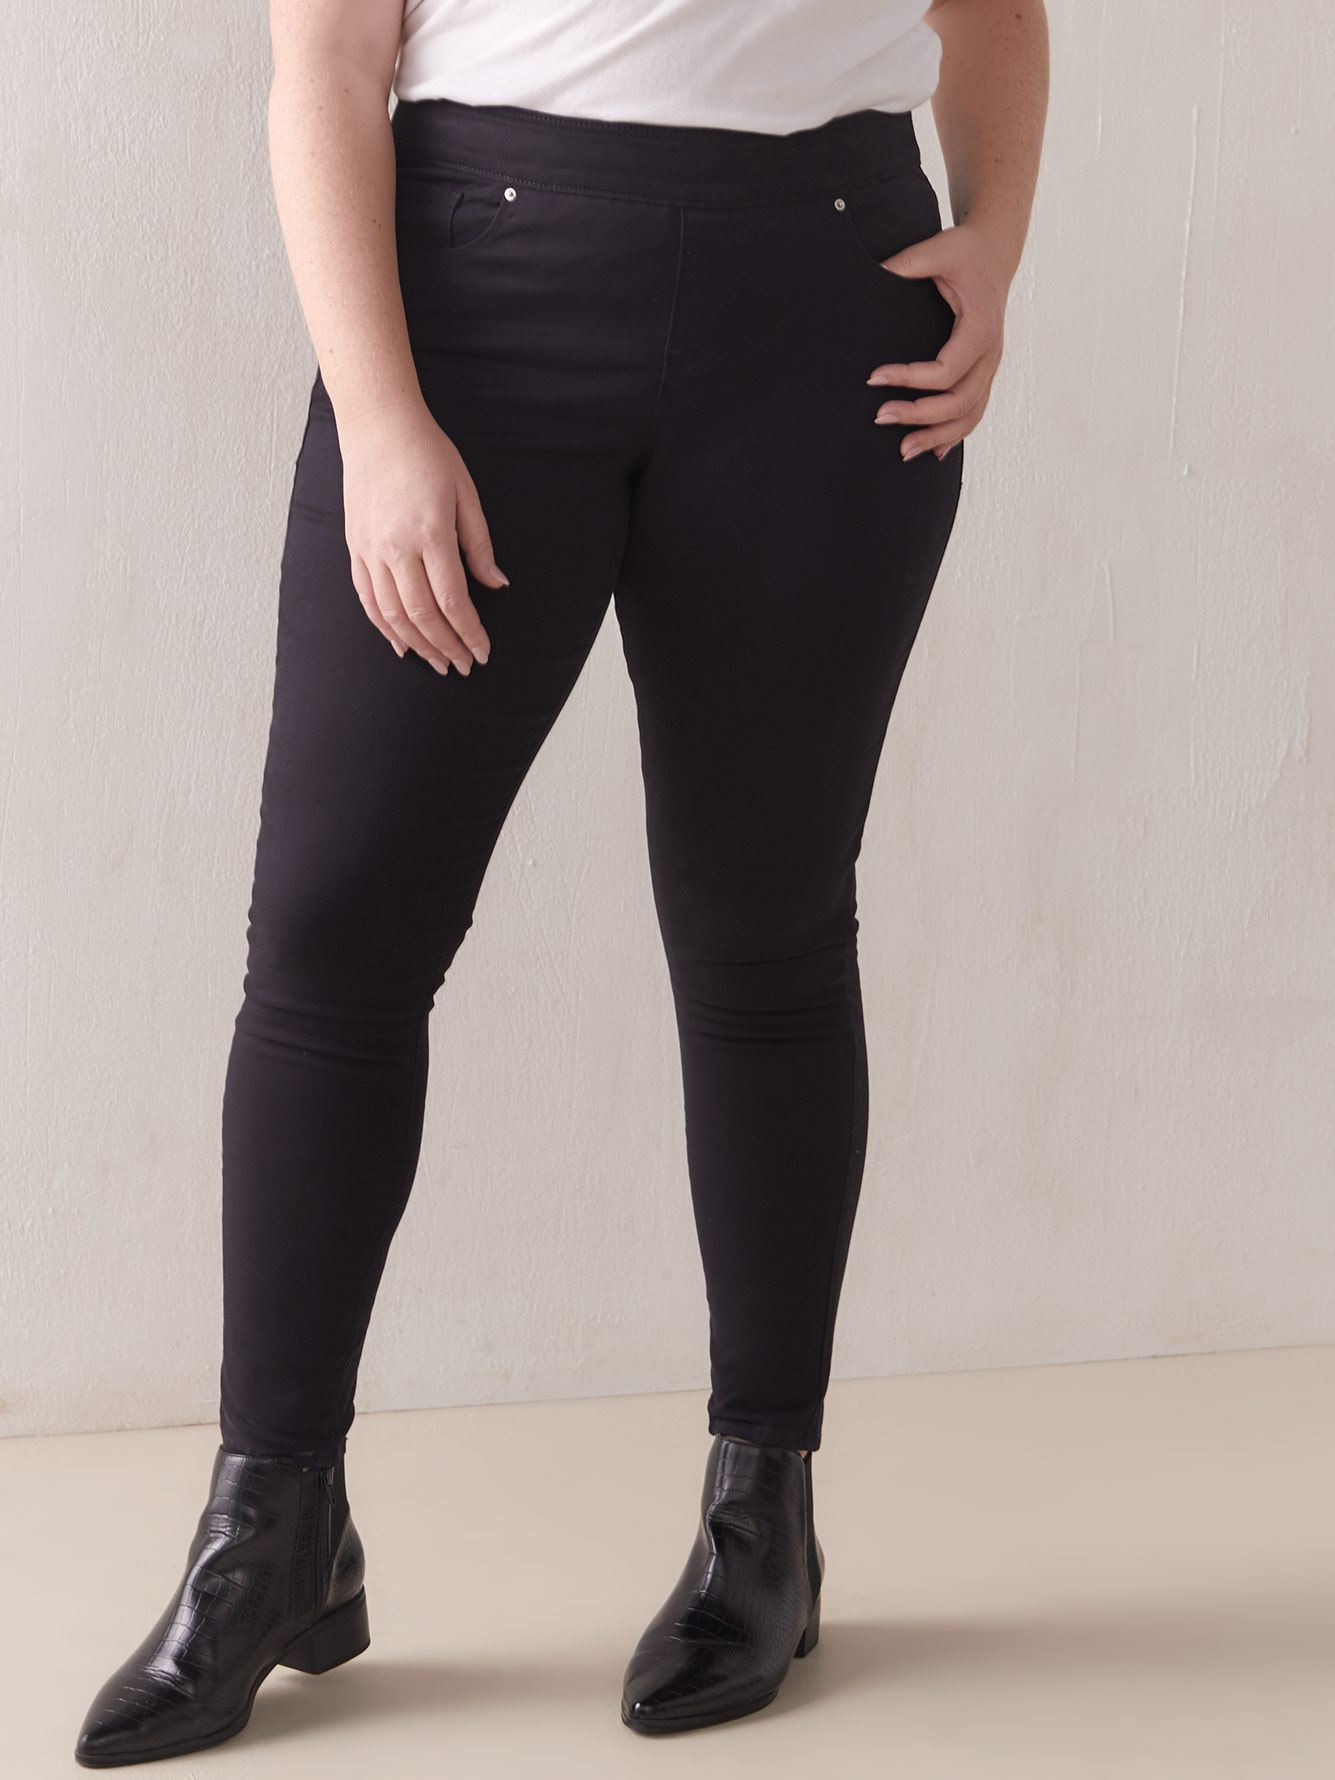 Pull-On Black Jegging - Levi's Premium